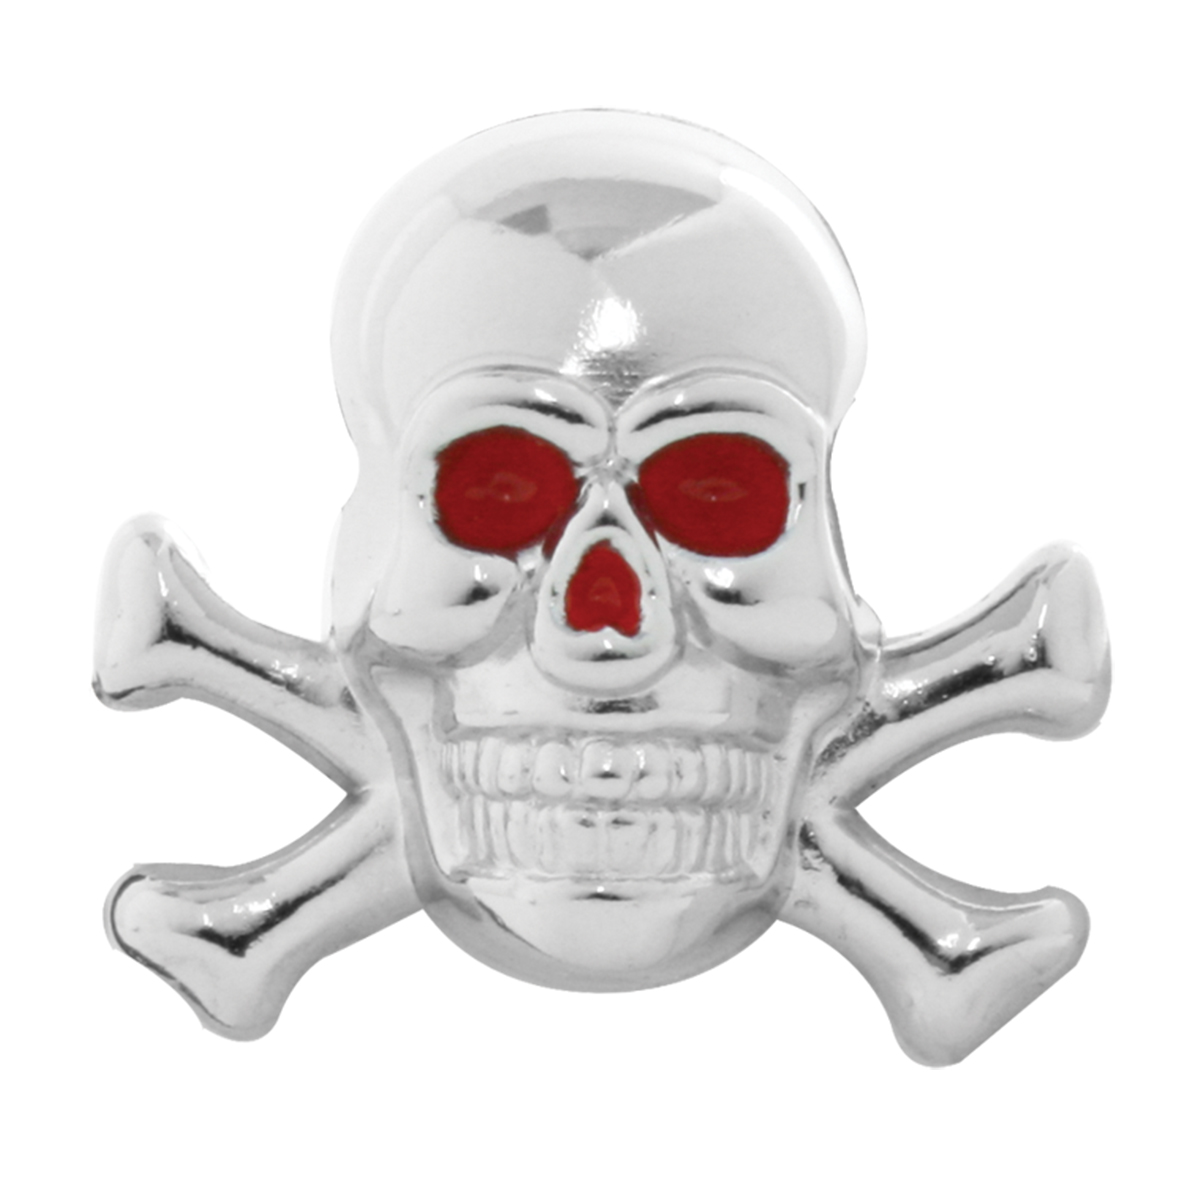 93751 Red Eye Skull with Cross Bones Dash Knobs